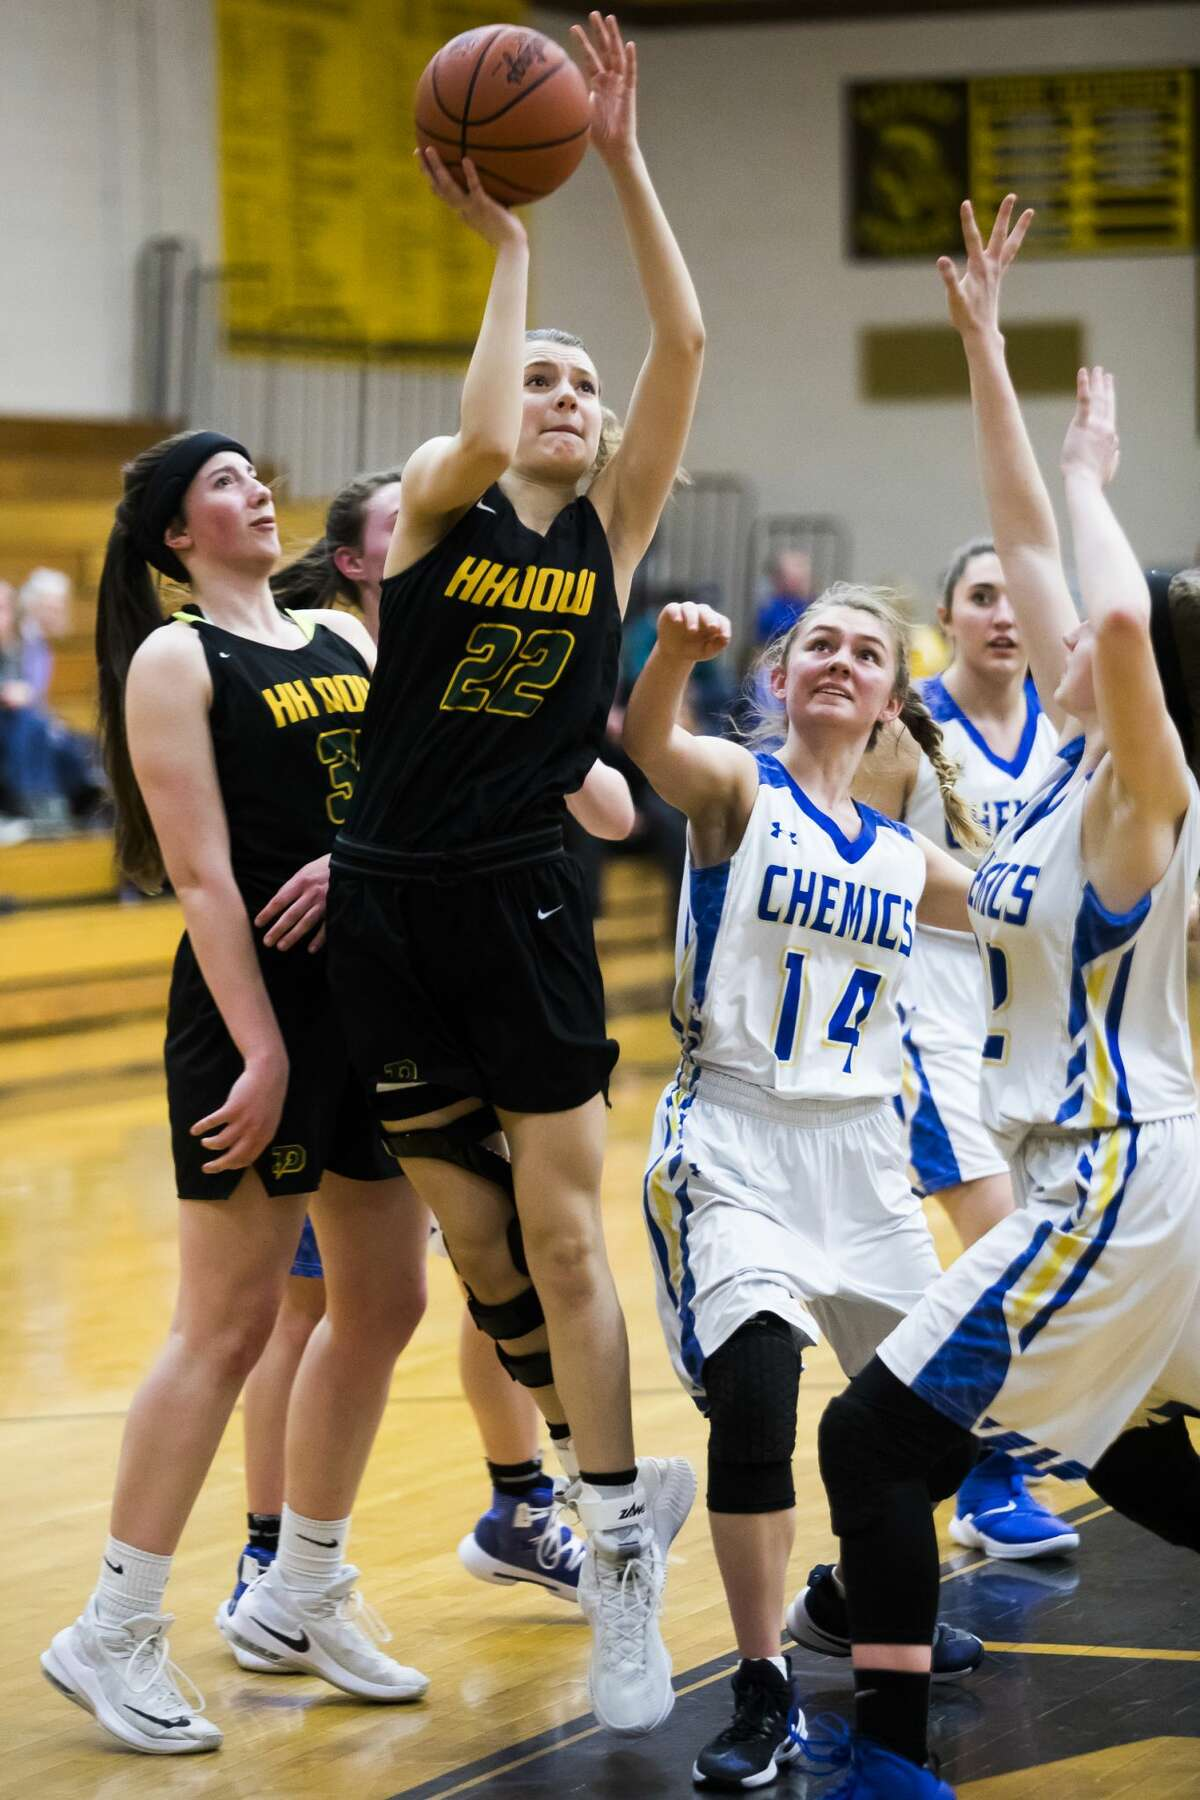 Dow's Haley Jaster takes a shot during their Division 1 district tournament opener victory over Midland on Monday, March 4, 2019 at Bay City Western High School. (Katy Kildee/kkildee@mdn.net)